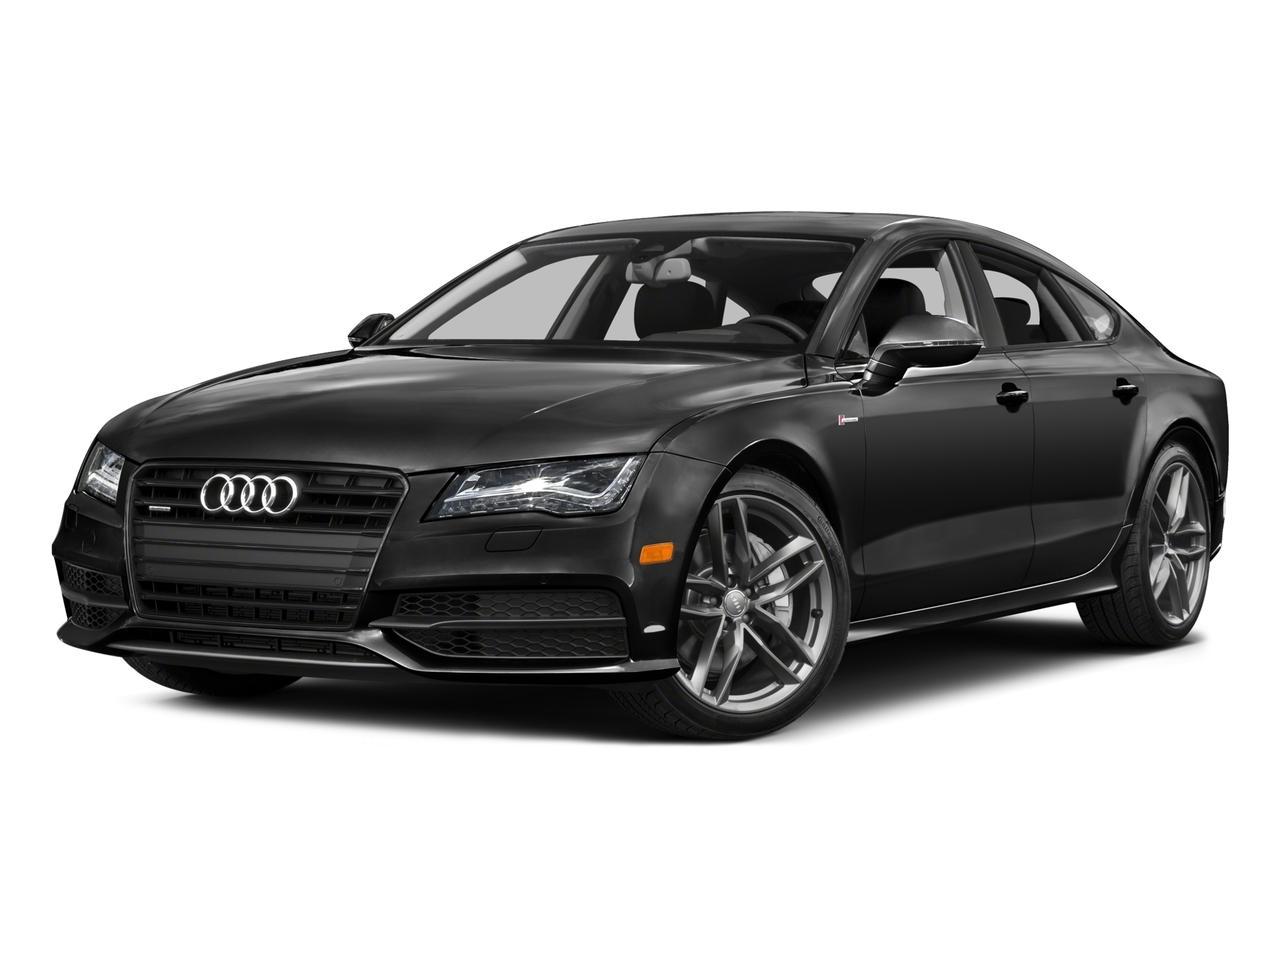 2015 Audi A7 Vehicle Photo in Colorado Springs, CO 80905